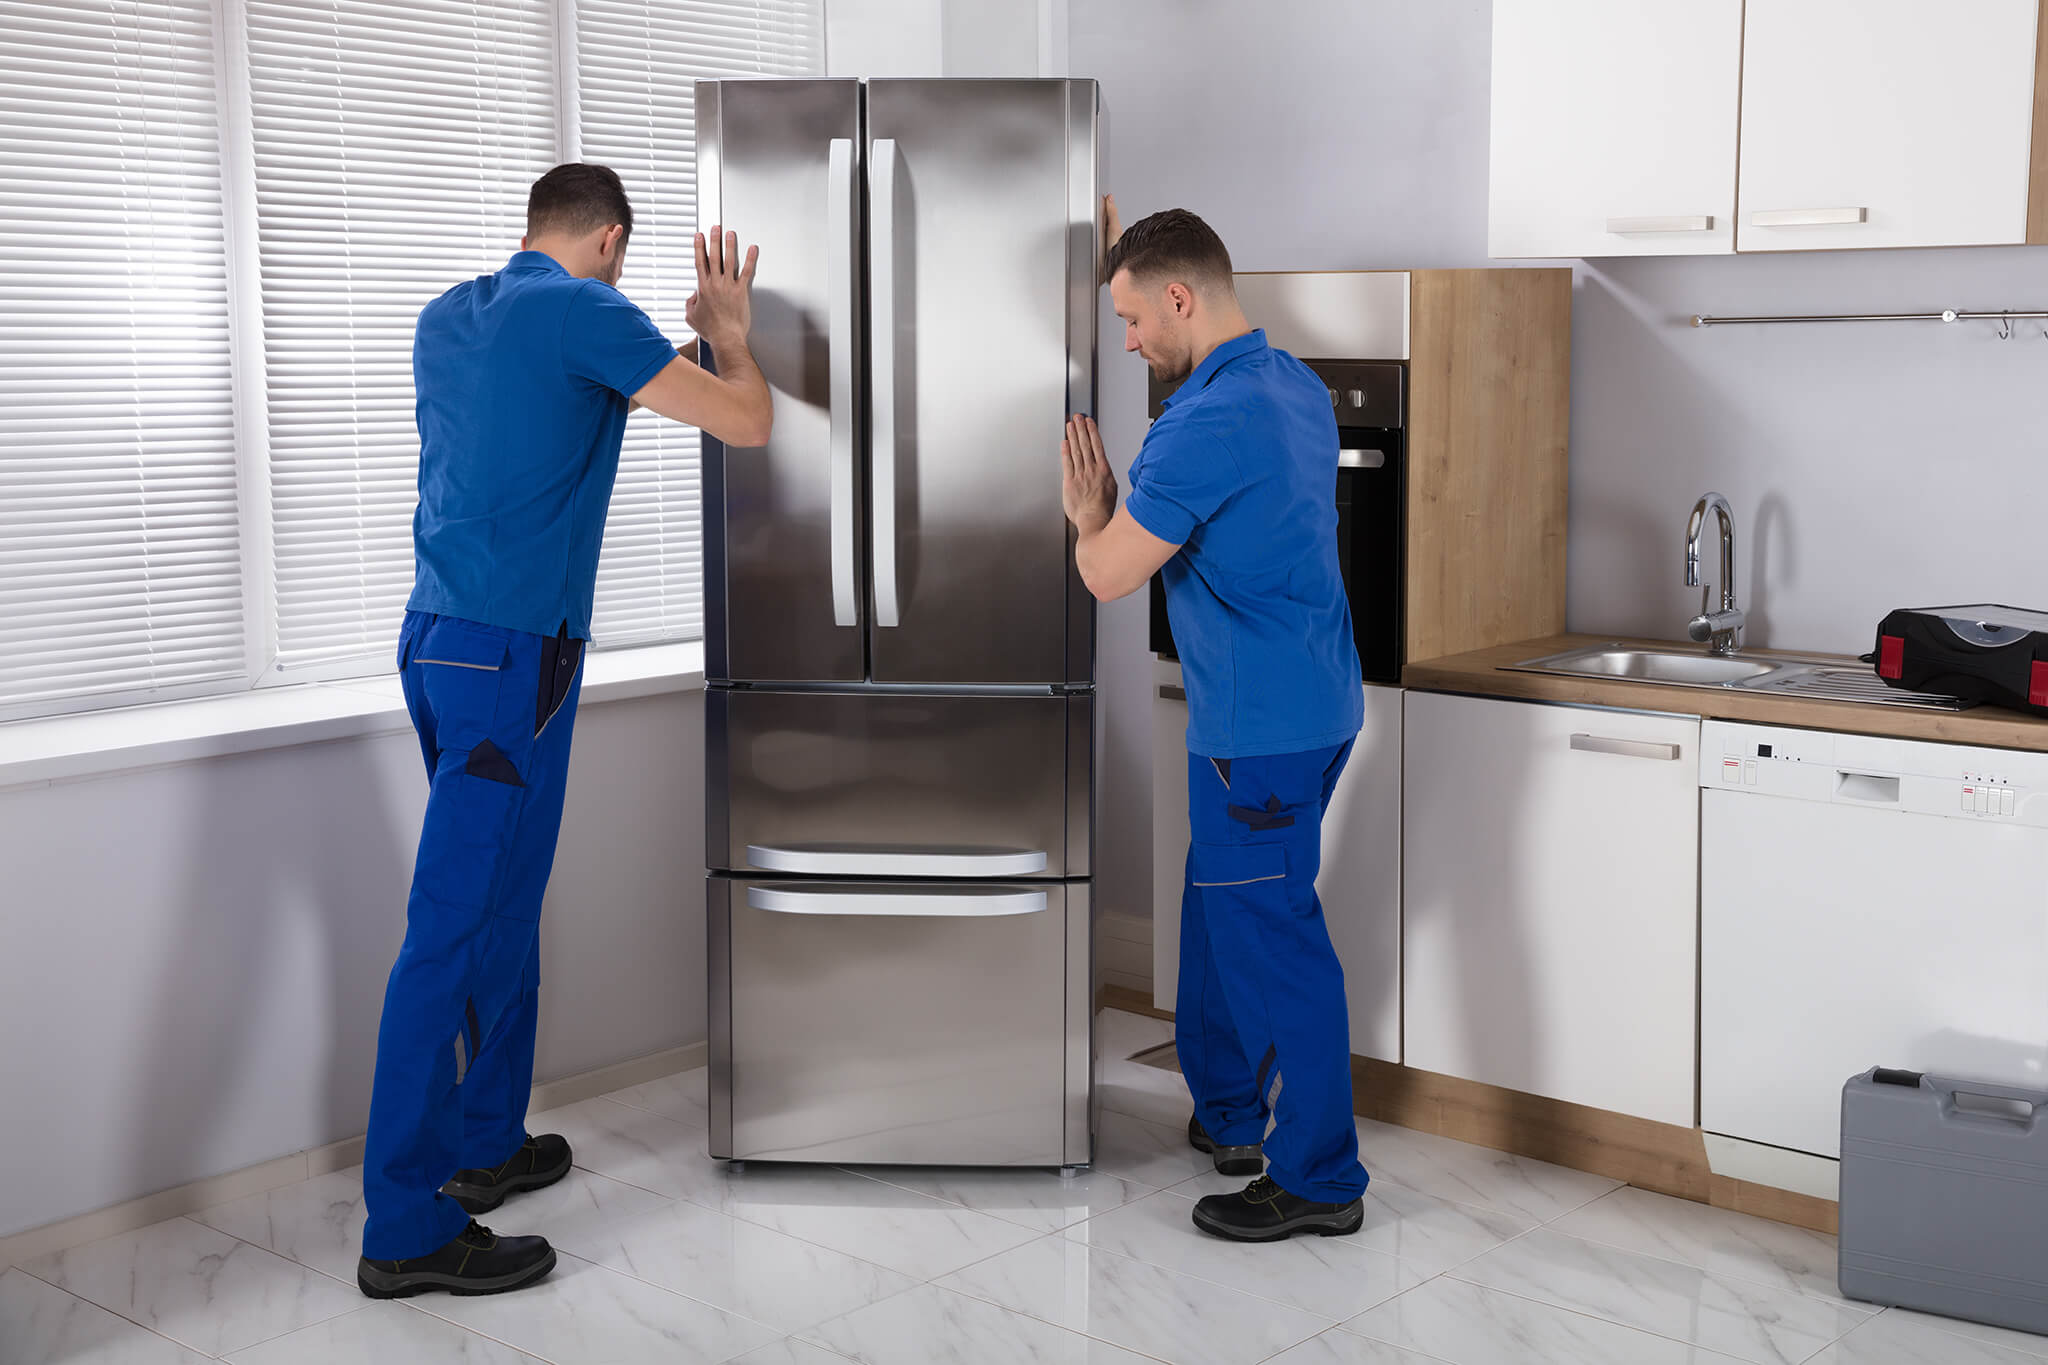 Moving Appliances out of the Kitchen